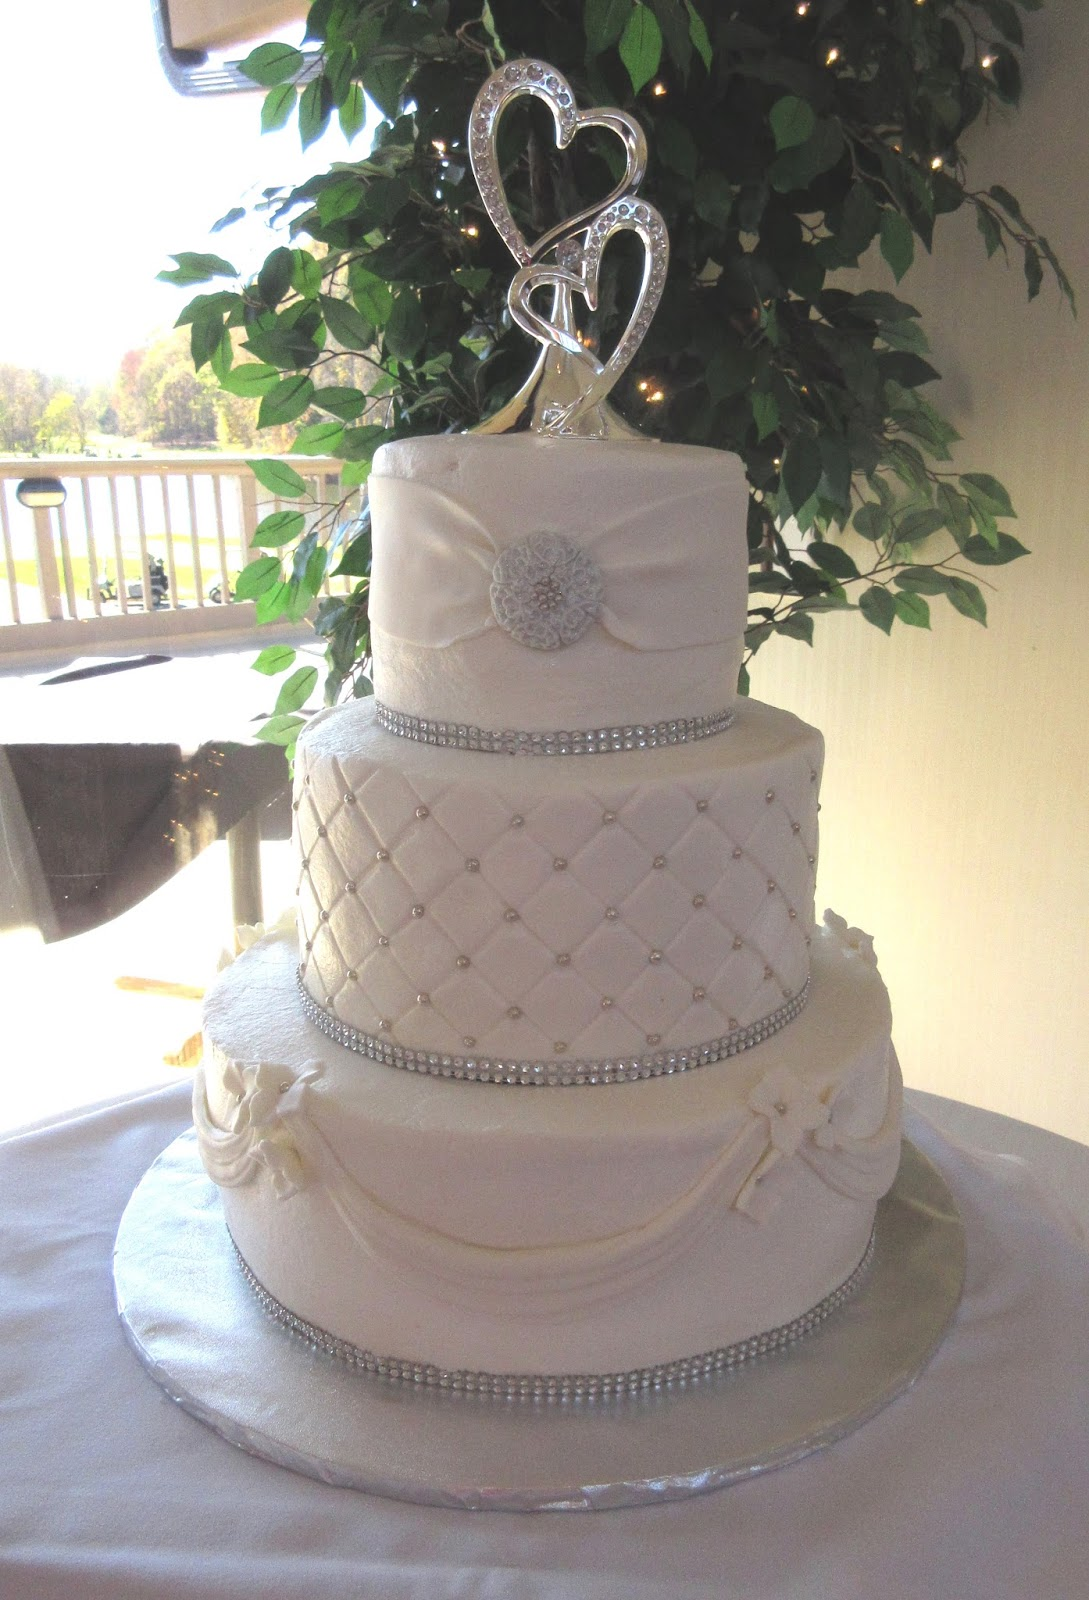 Wedding Cakes By Mary Ann  Elegant Wedding Cake Wedding Cakes By Mary Ann